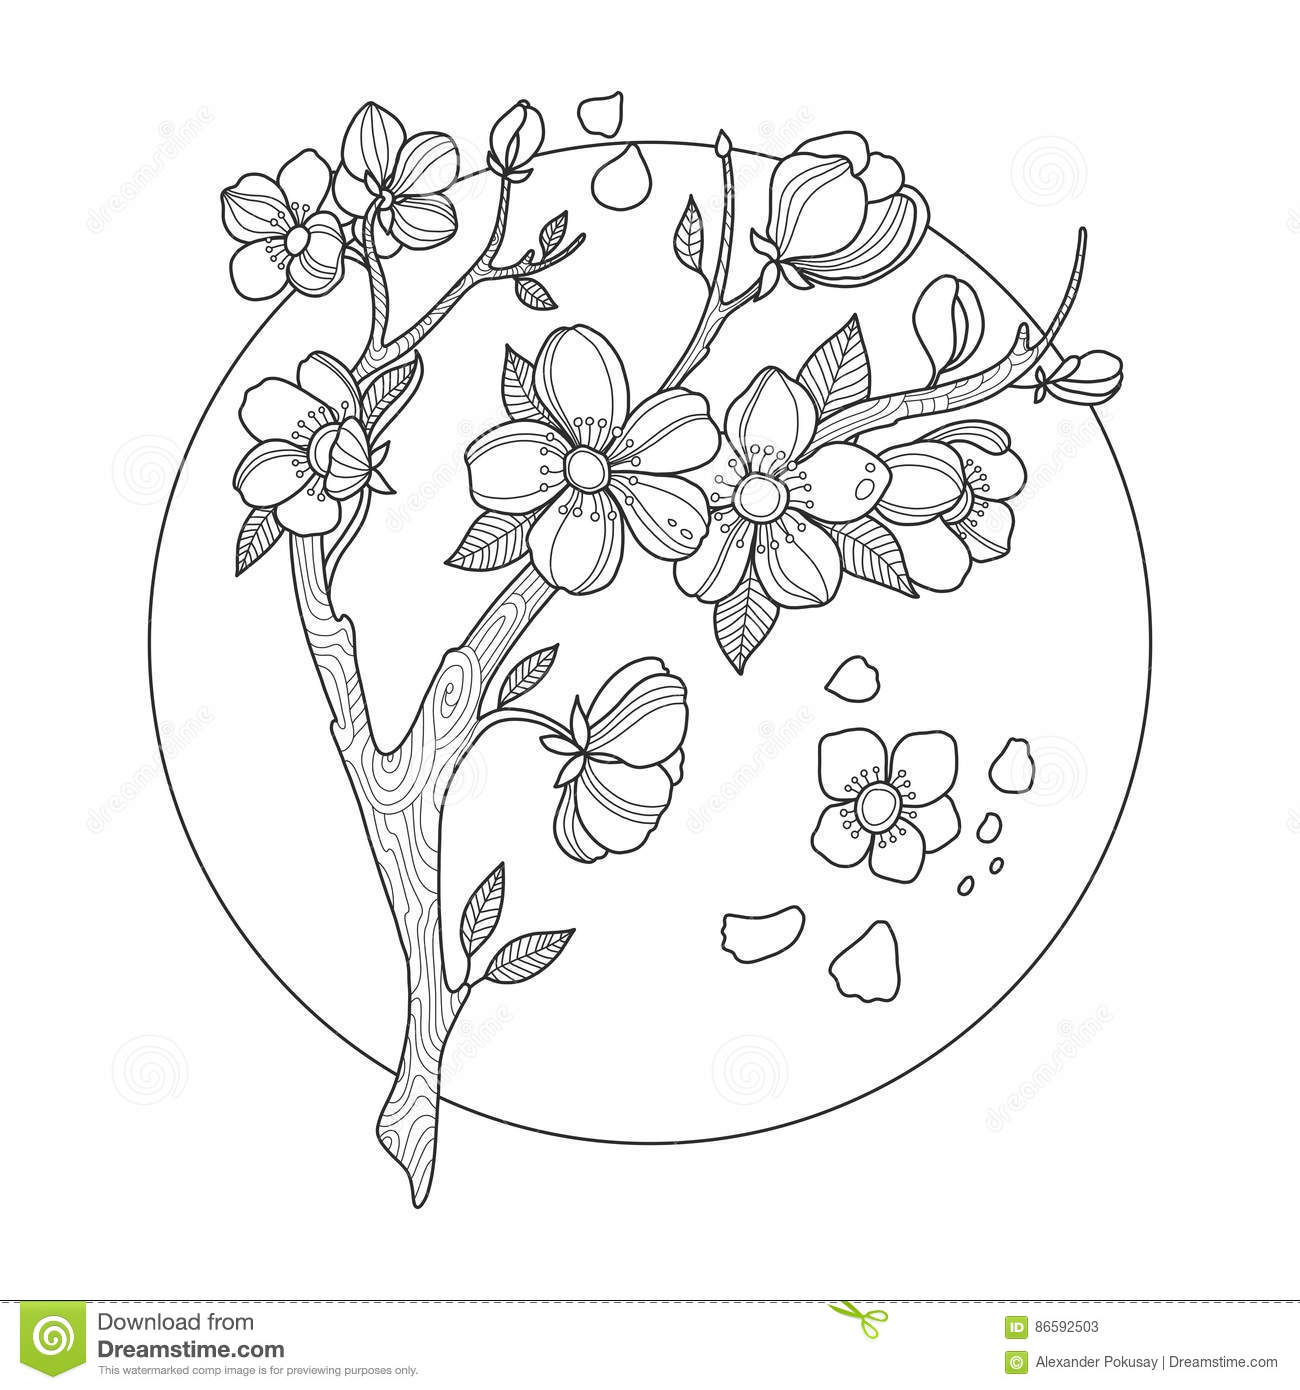 Cherry blossom coloring pictures coloring pages for Cherry blossom tree coloring page